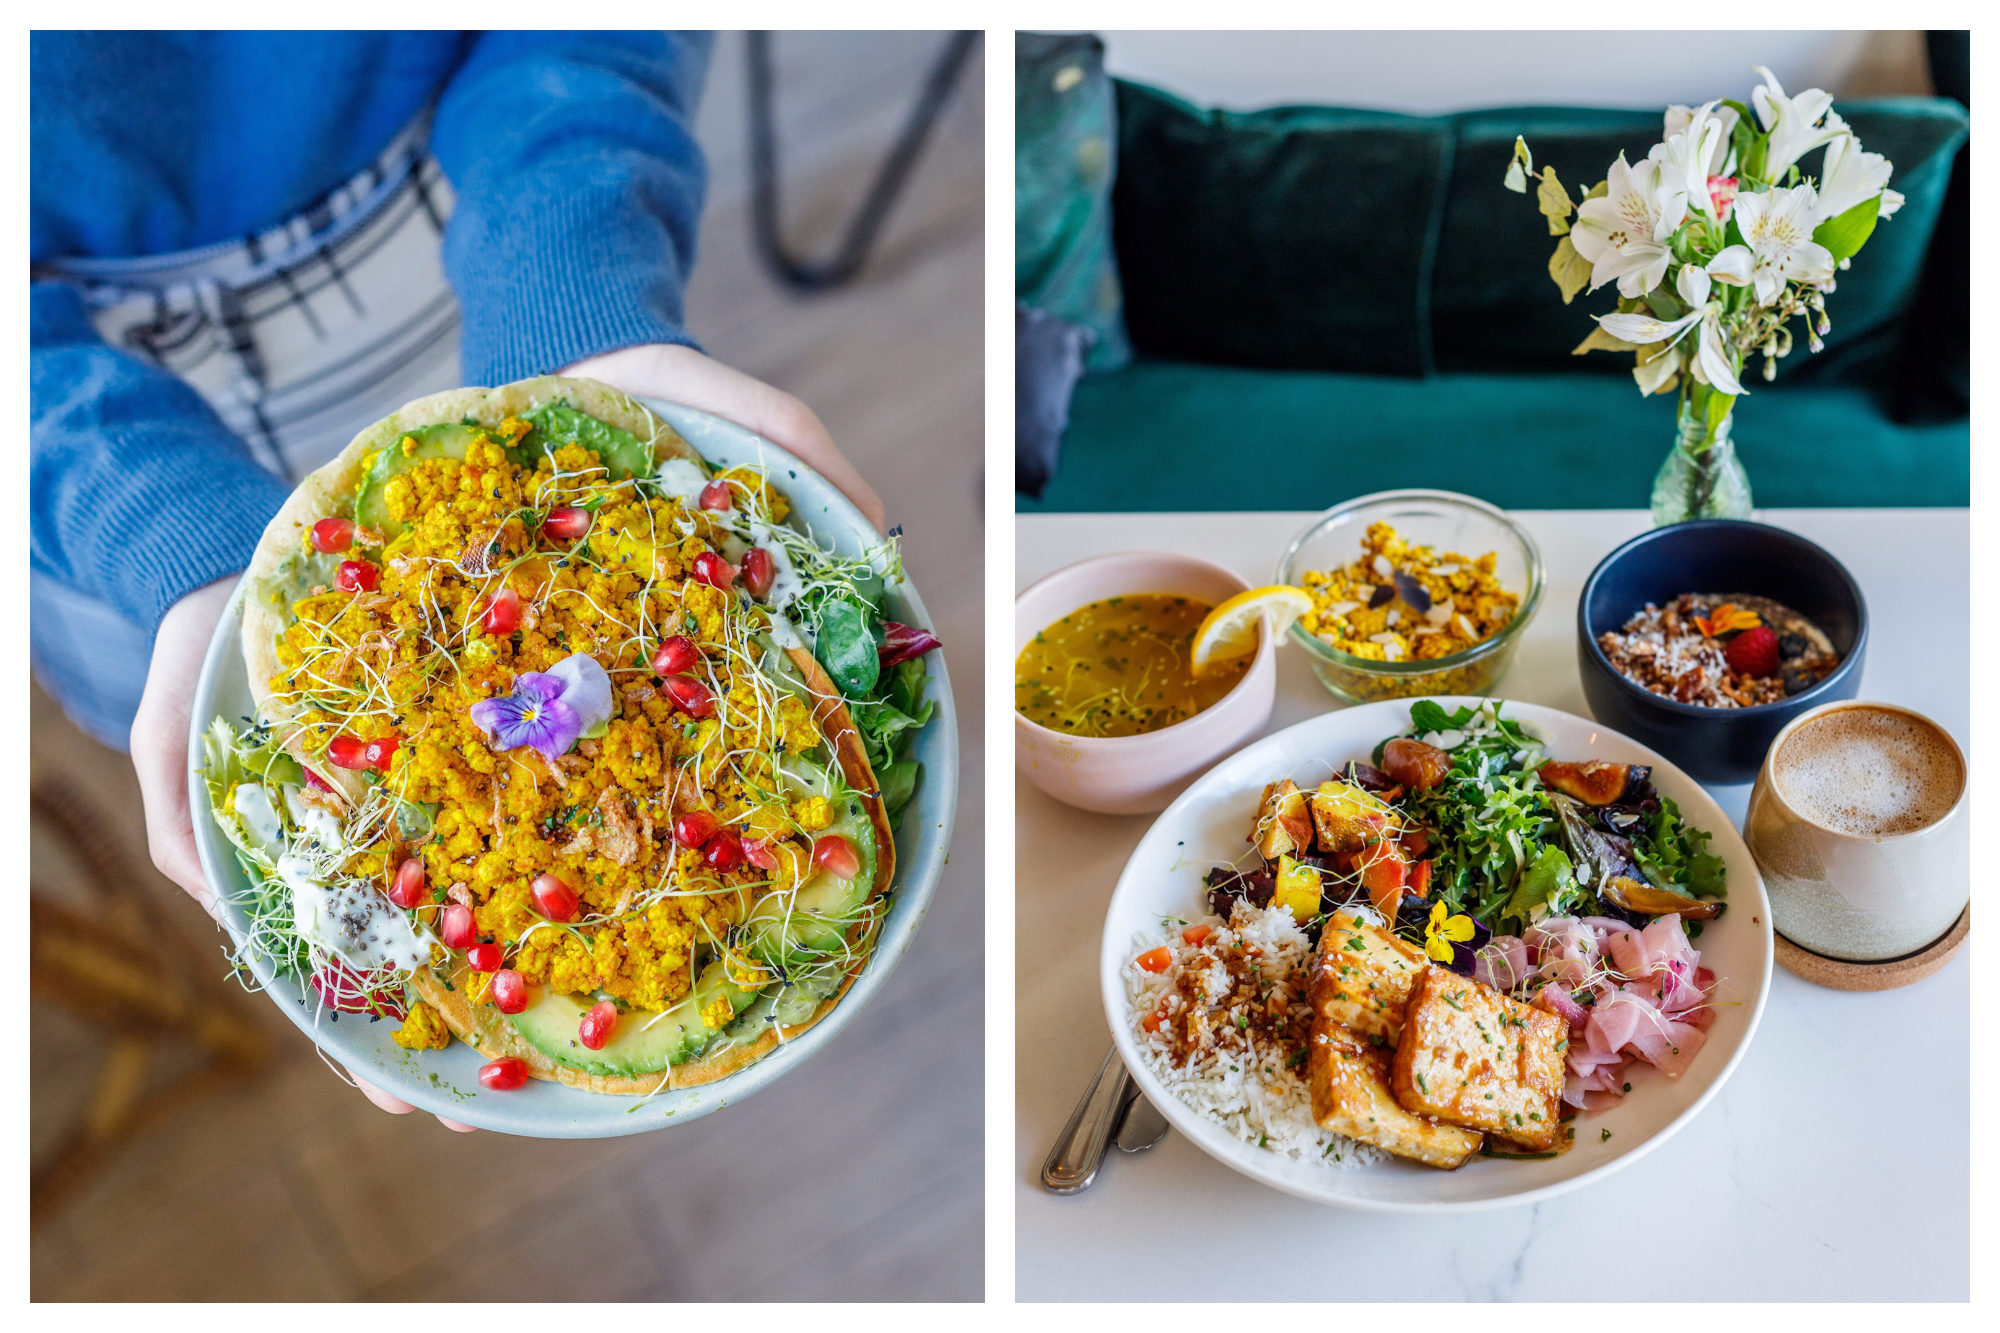 A gorgeous, brightly colored lentil salad being held up by a staff member of Abattoir Végétal gluten-free café in Paris (left) and a brunch of several dishes laid out at Abattoir Végétal (right).